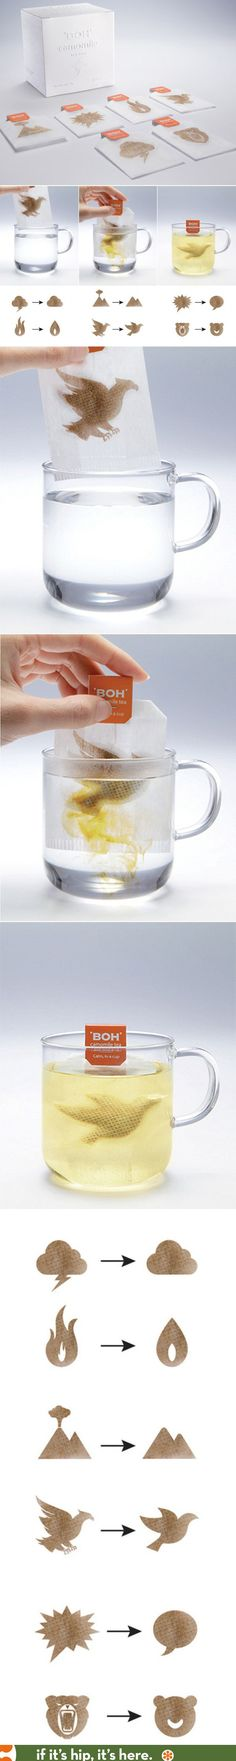 A clever way to market 'calm' for BOH Camomile tea bags. - buy bags online, shoulder bags and totes, cheap nice bags *sponsored https://www.pinterest.com/bags_bag/ https://www.pinterest.com/explore/bag/ https://www.pinterest.com/bags_bag/drawstring-bag/ https://unitedbyblue.com/collections/bags